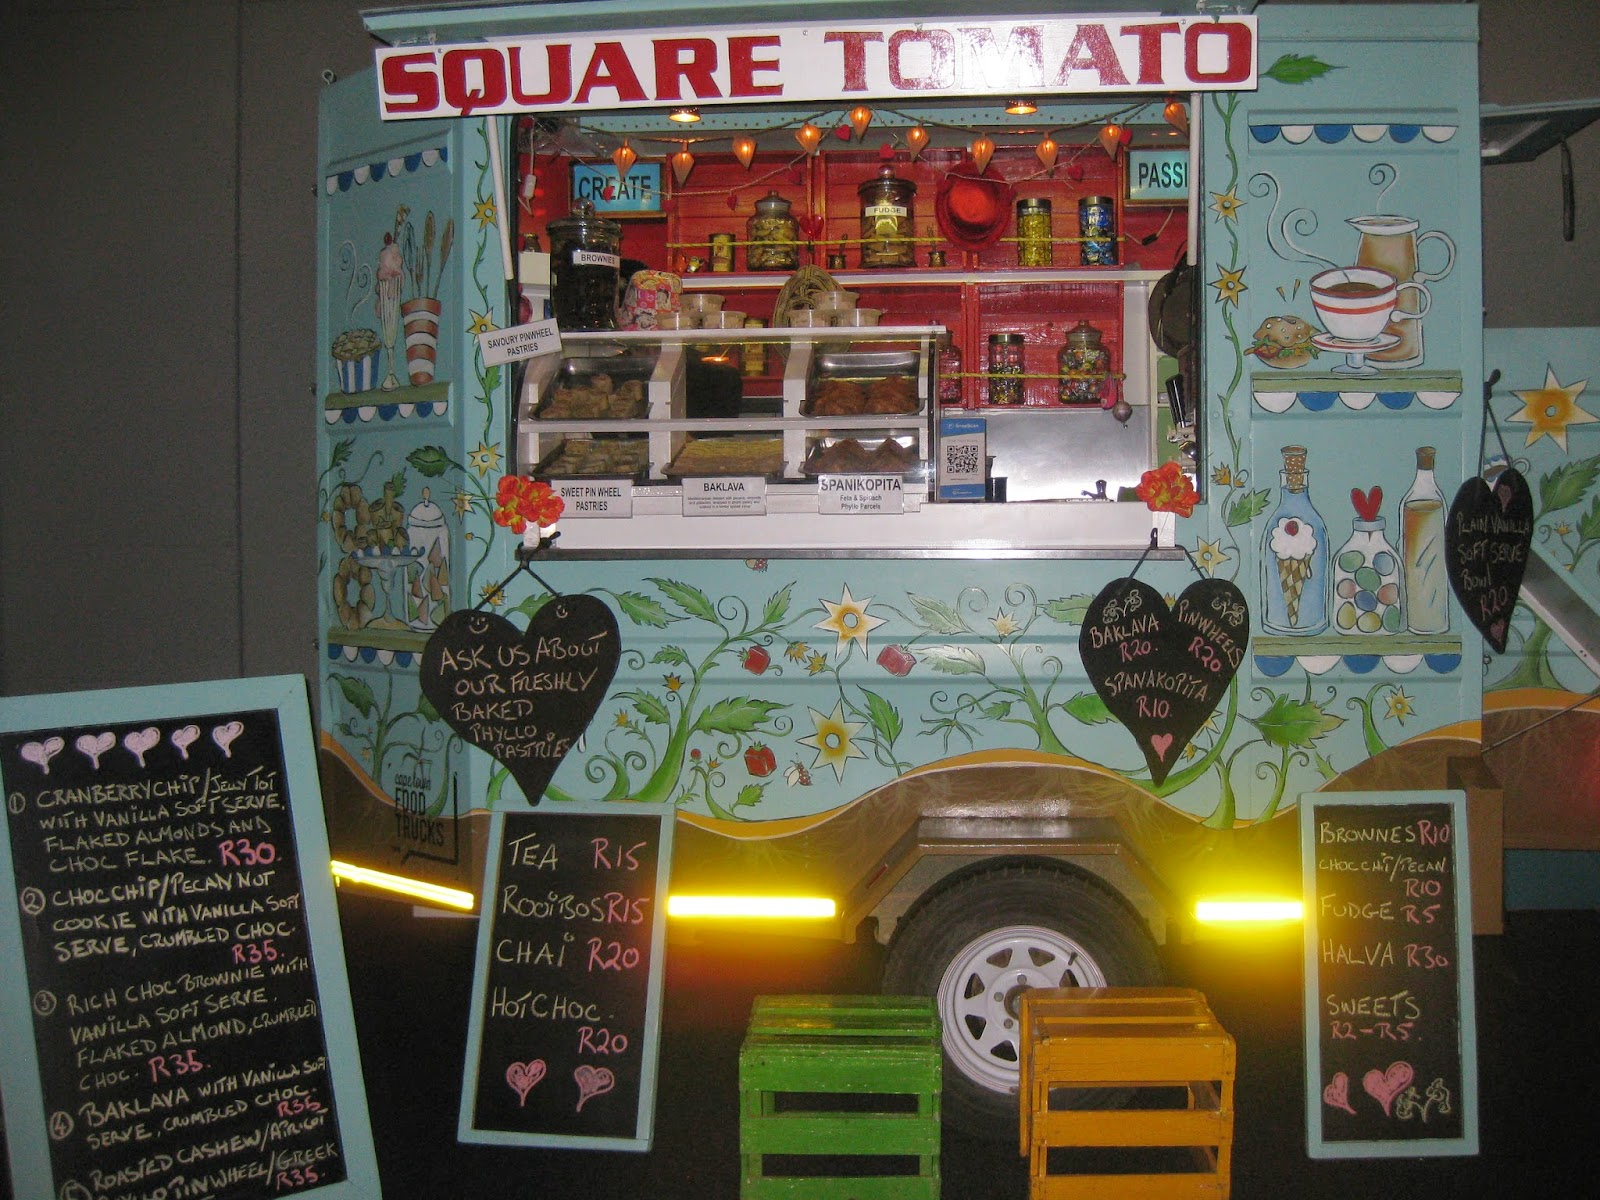 Cape Town Food Truck